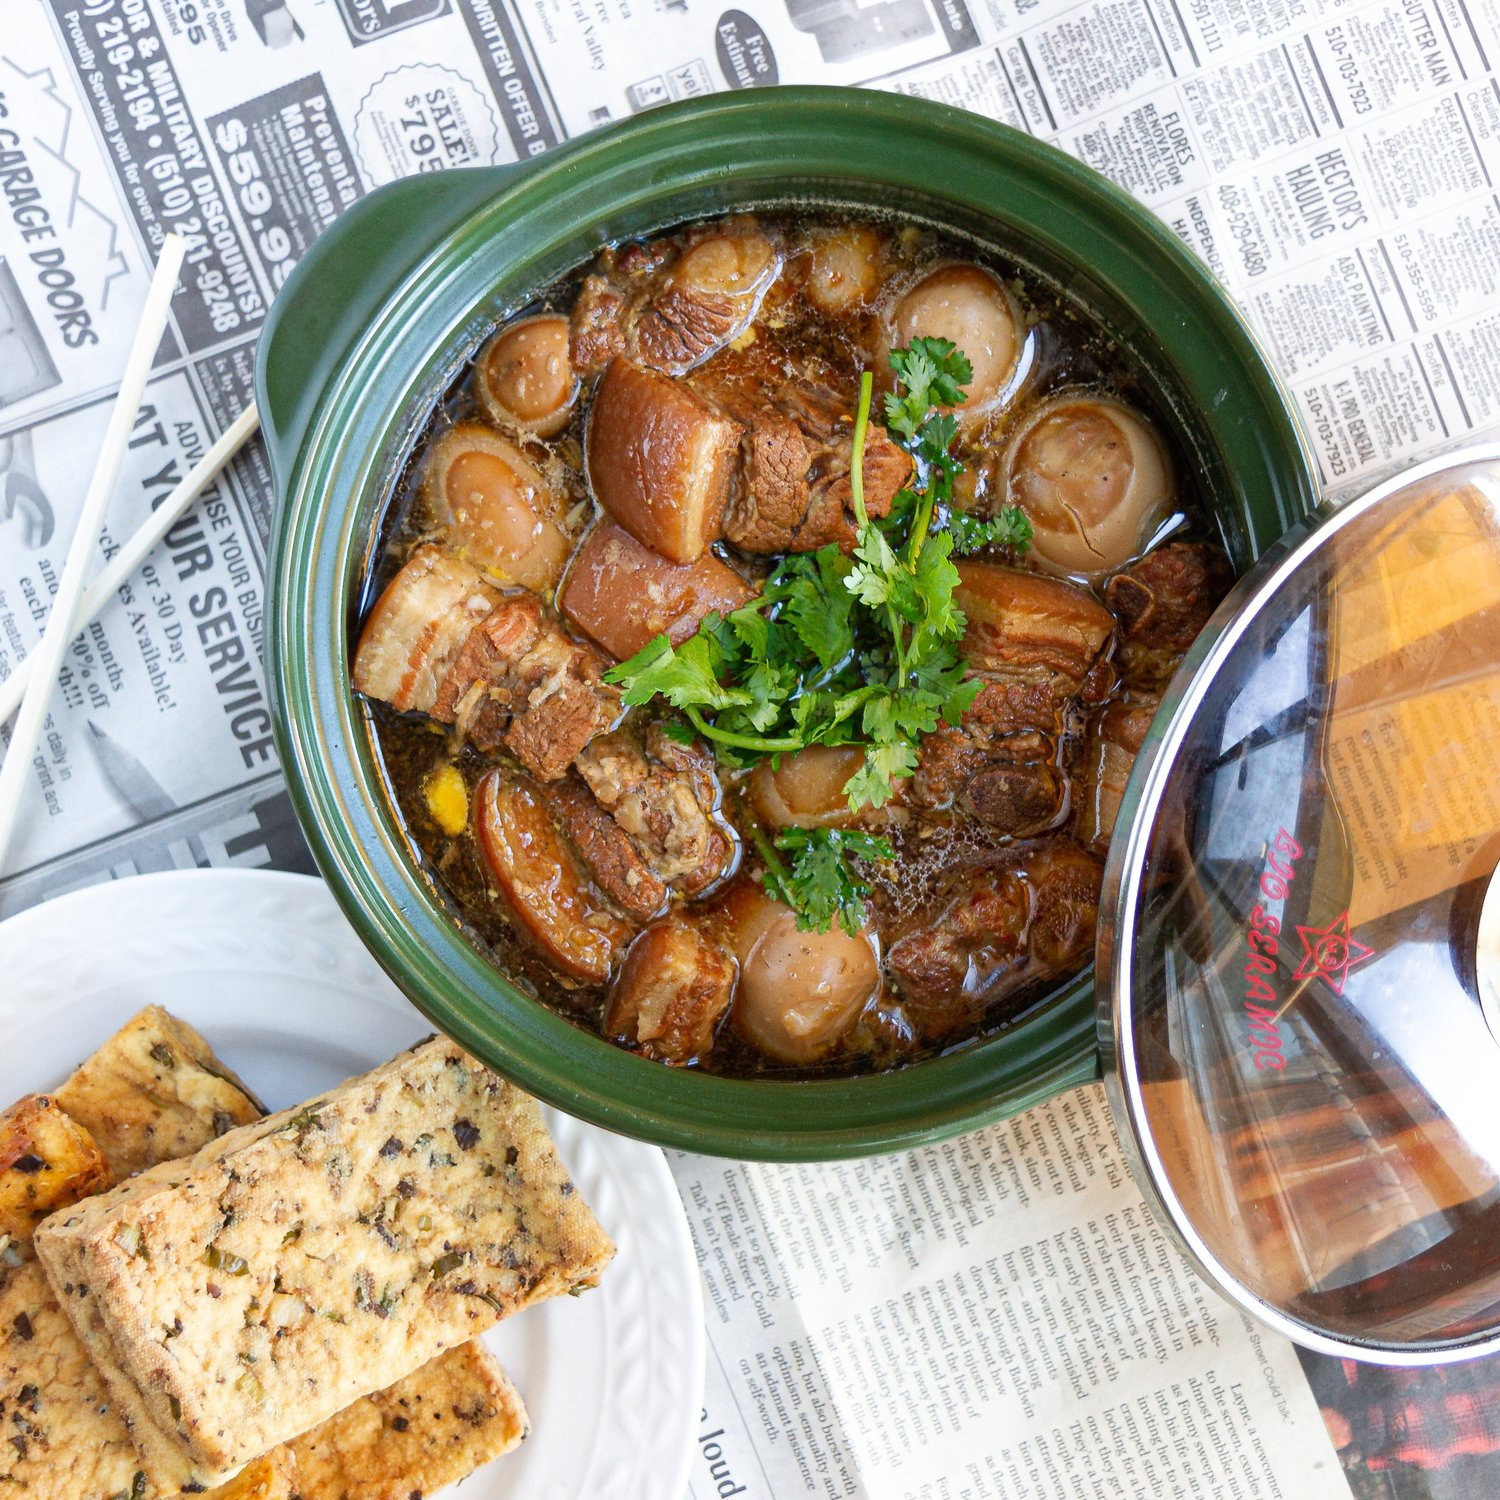 Vietnamese Caramelized and Braised Pork Belly with Eggs (Thit Kho